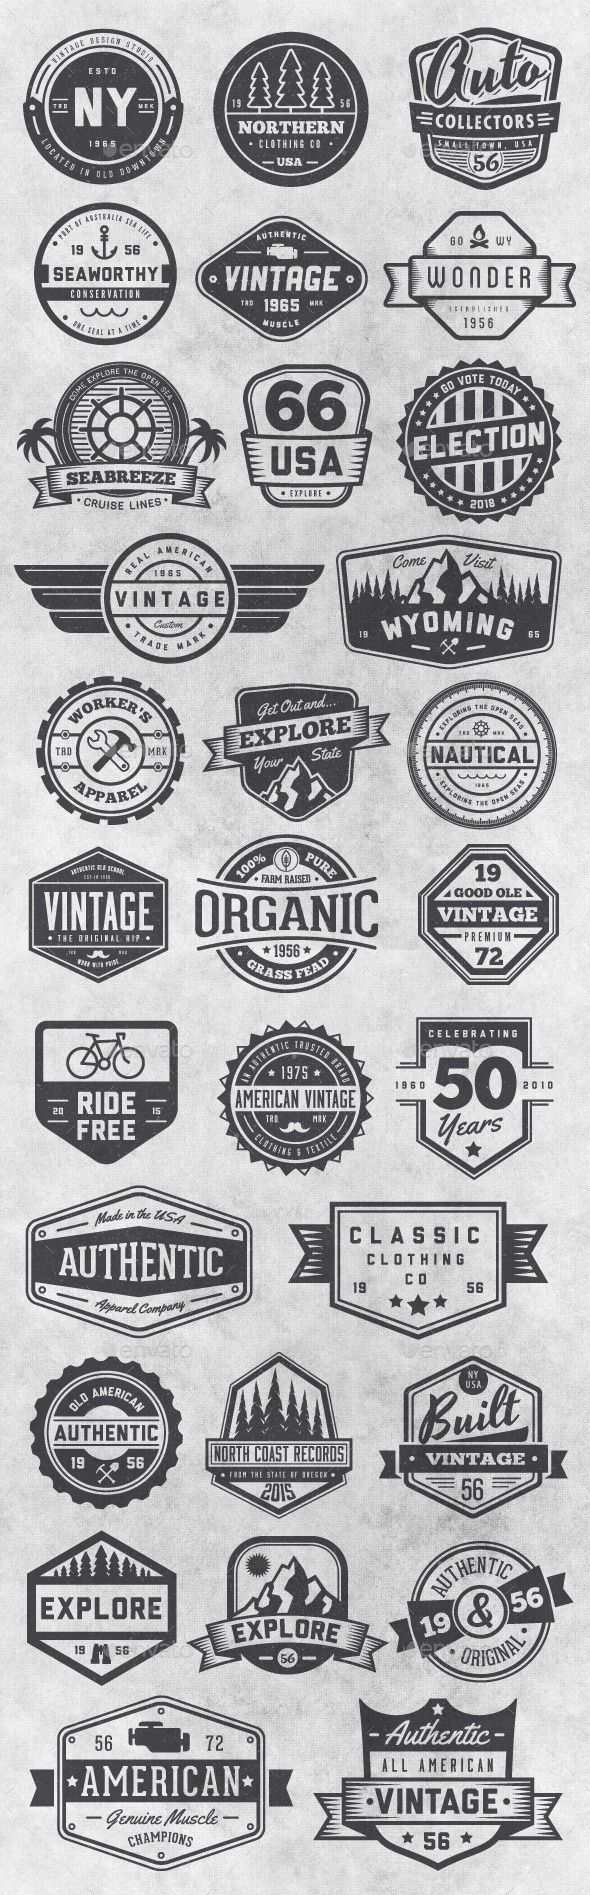 30 Vintage Style Badges and Logos Vol 6